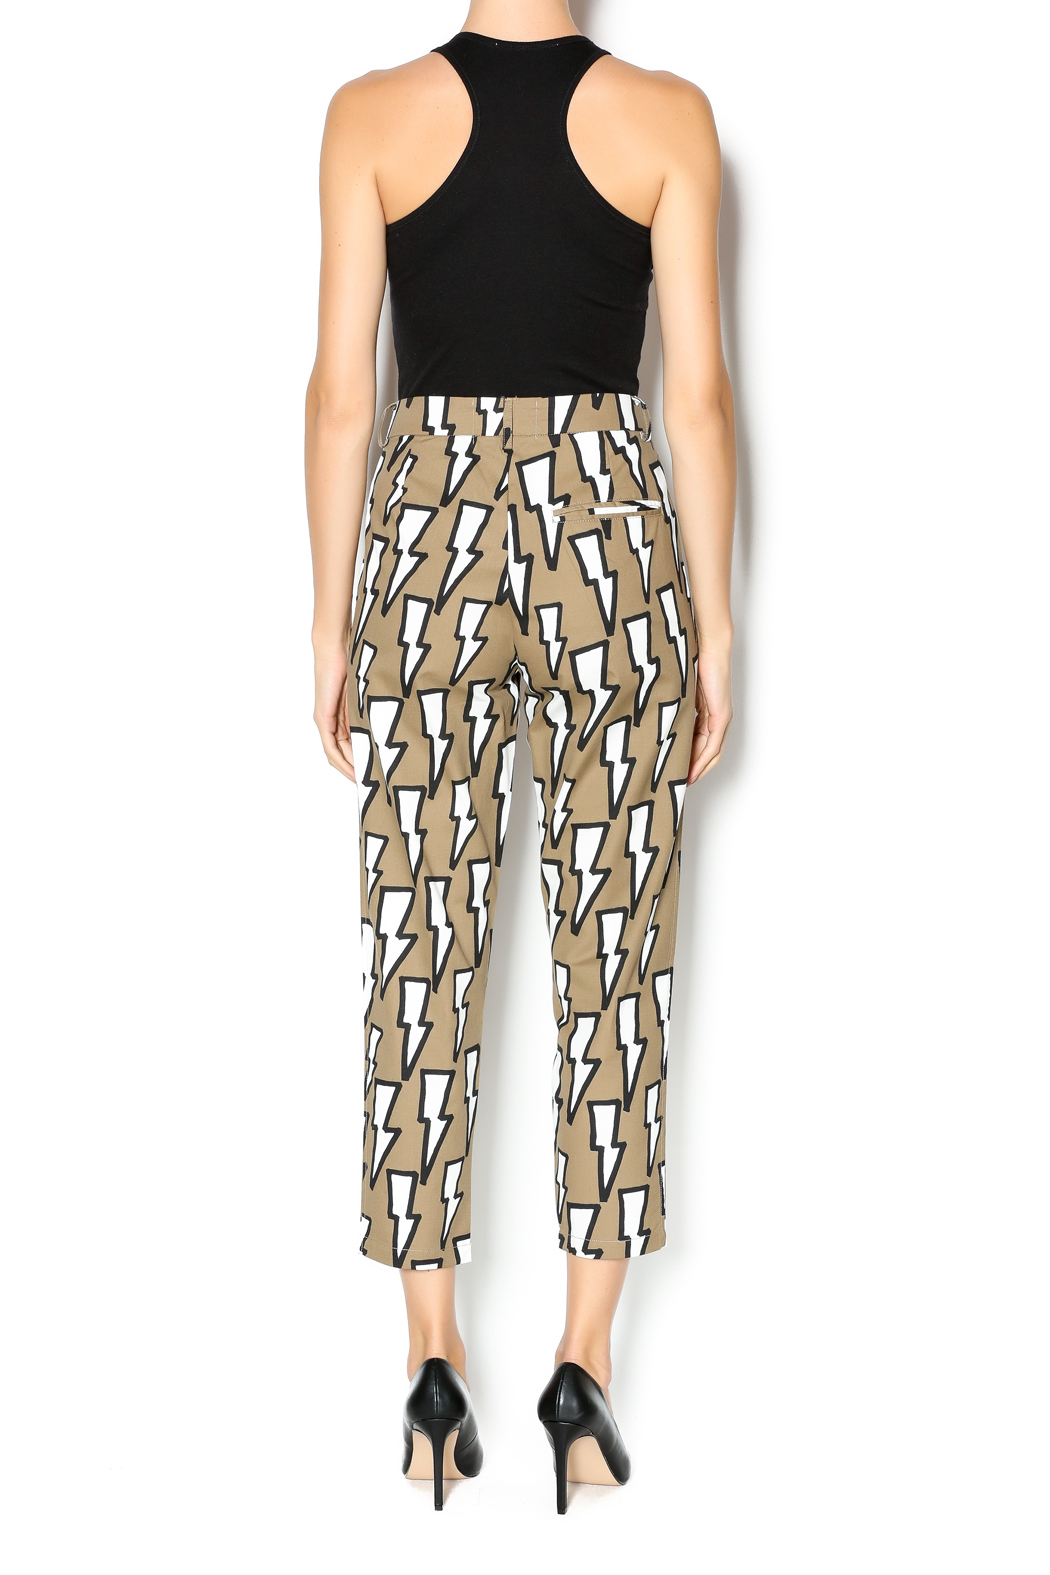 Missy Skins Lightning Bolt Print Pant - Side Cropped Image